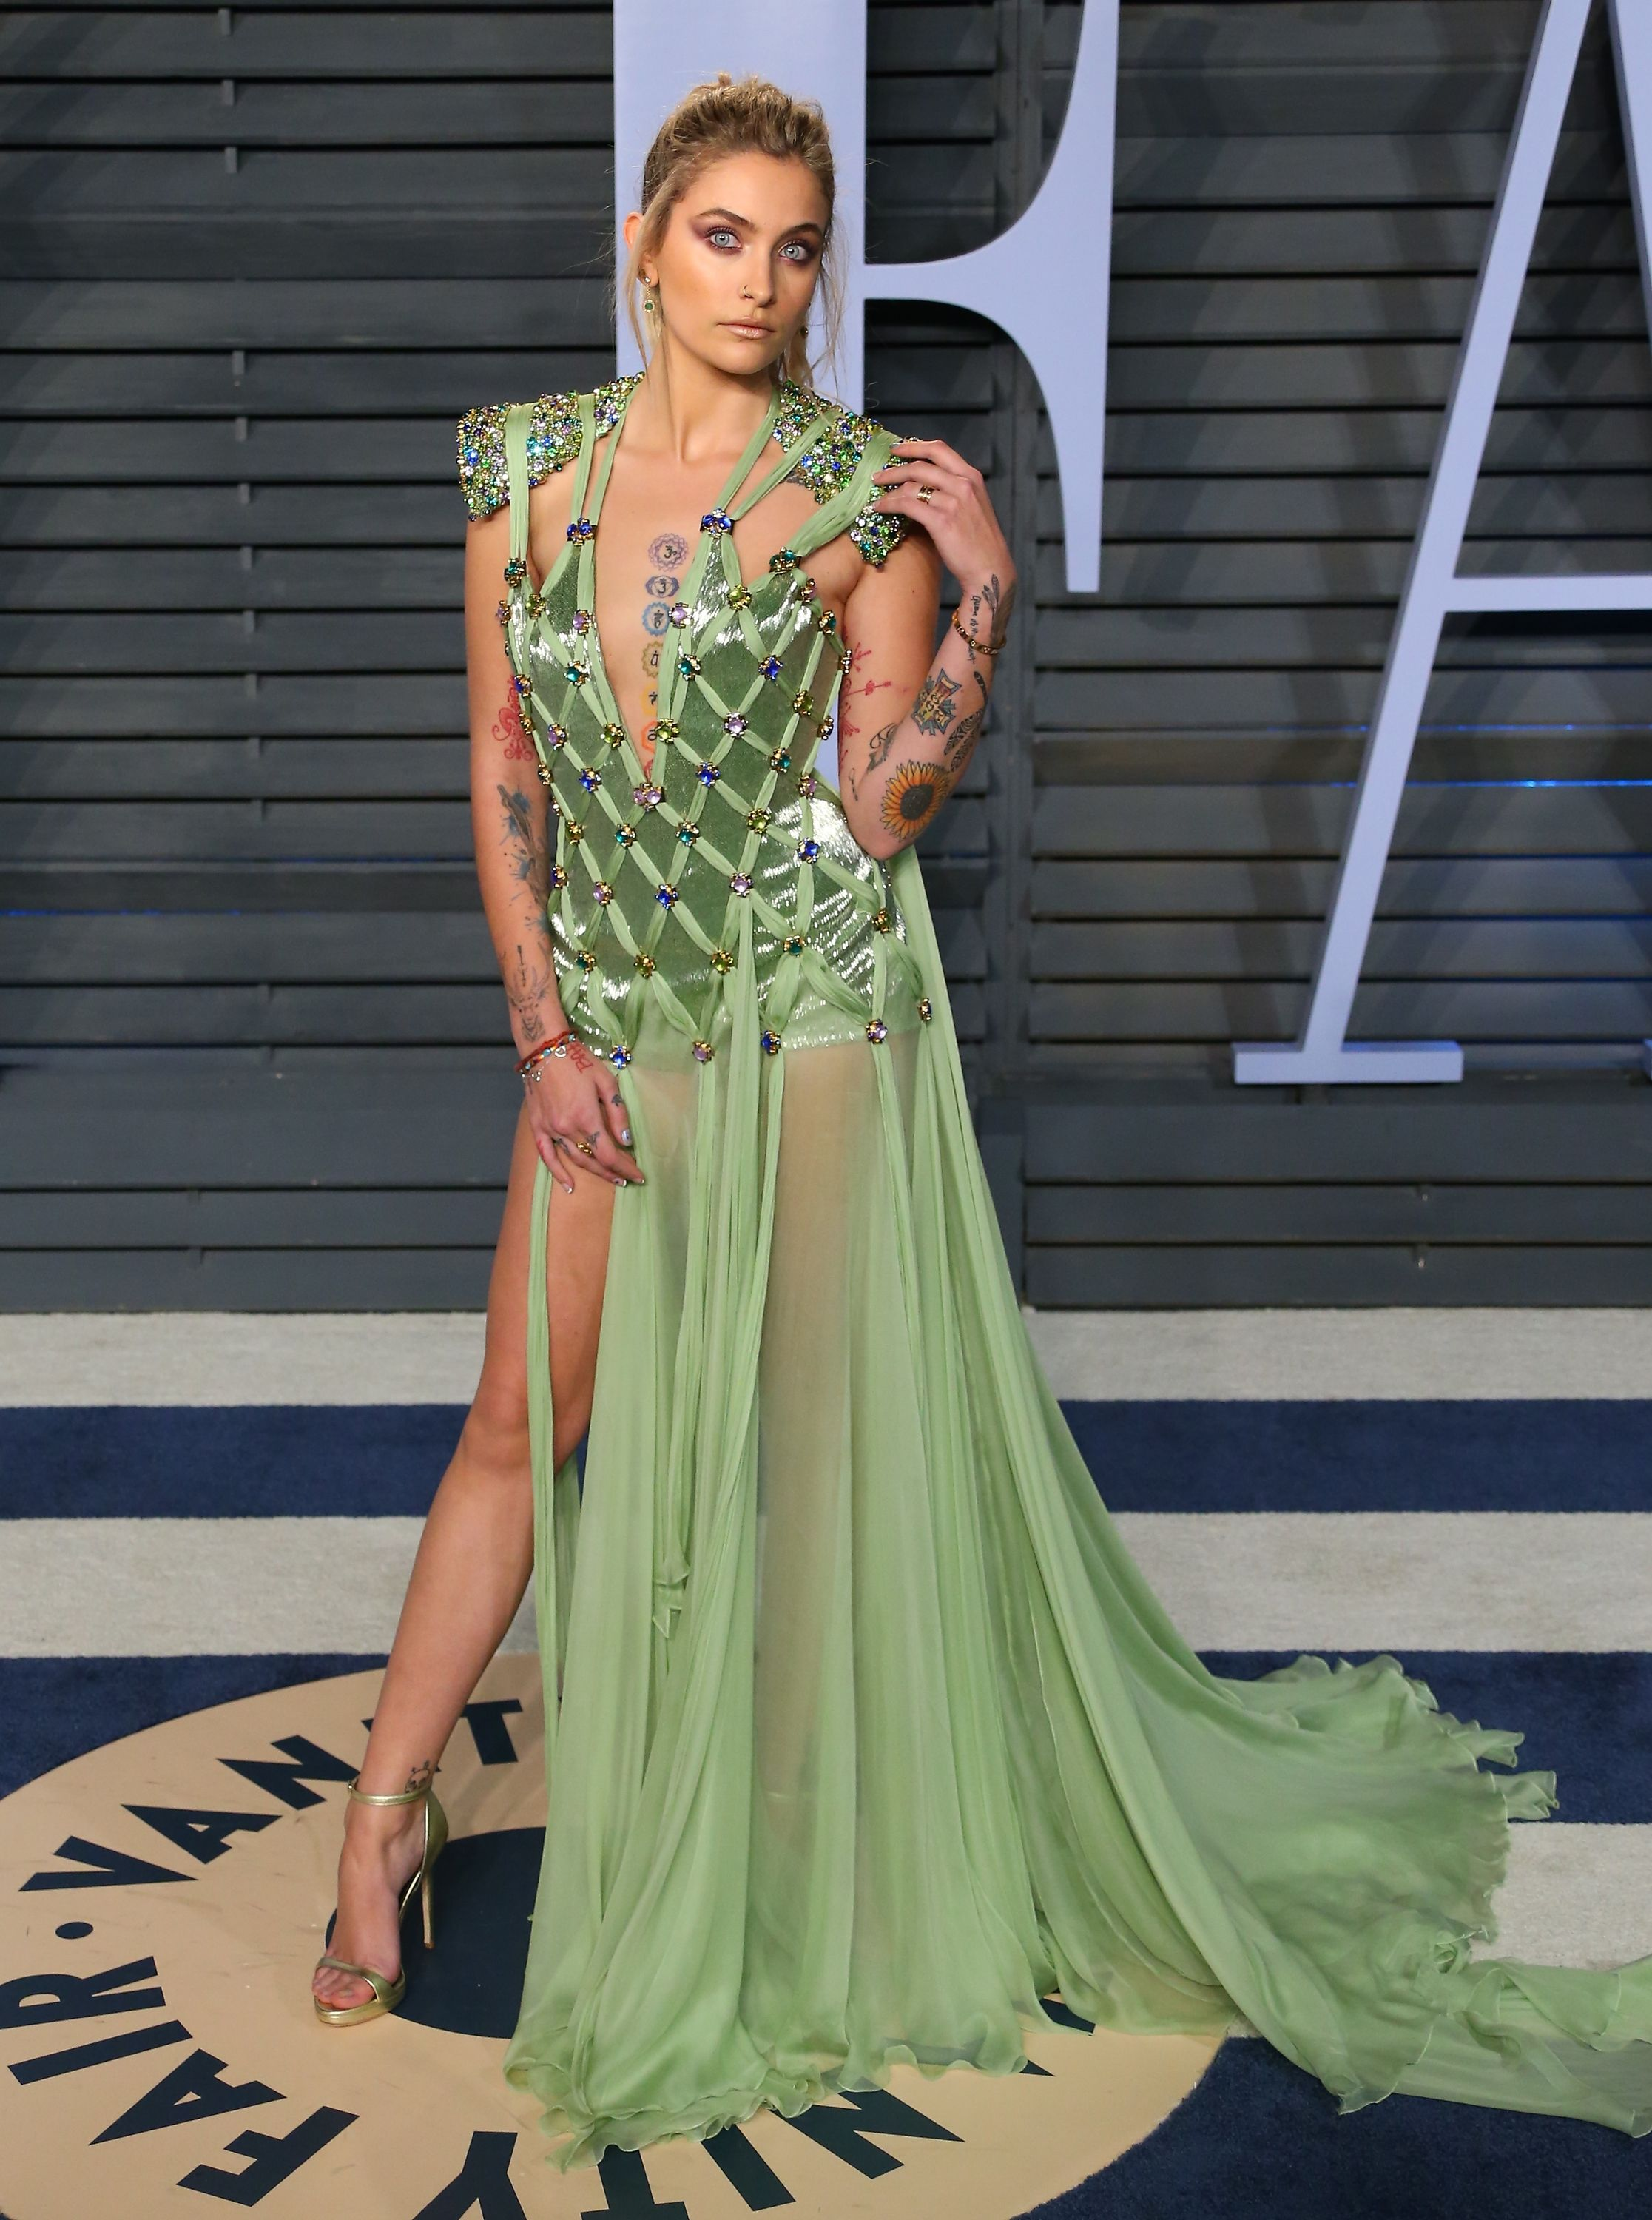 9b1b3dfd The Most Naked Red Carpet Outfits of 2018 - Celebs in Sheer, Low-Cut, and  Revealing Gowns